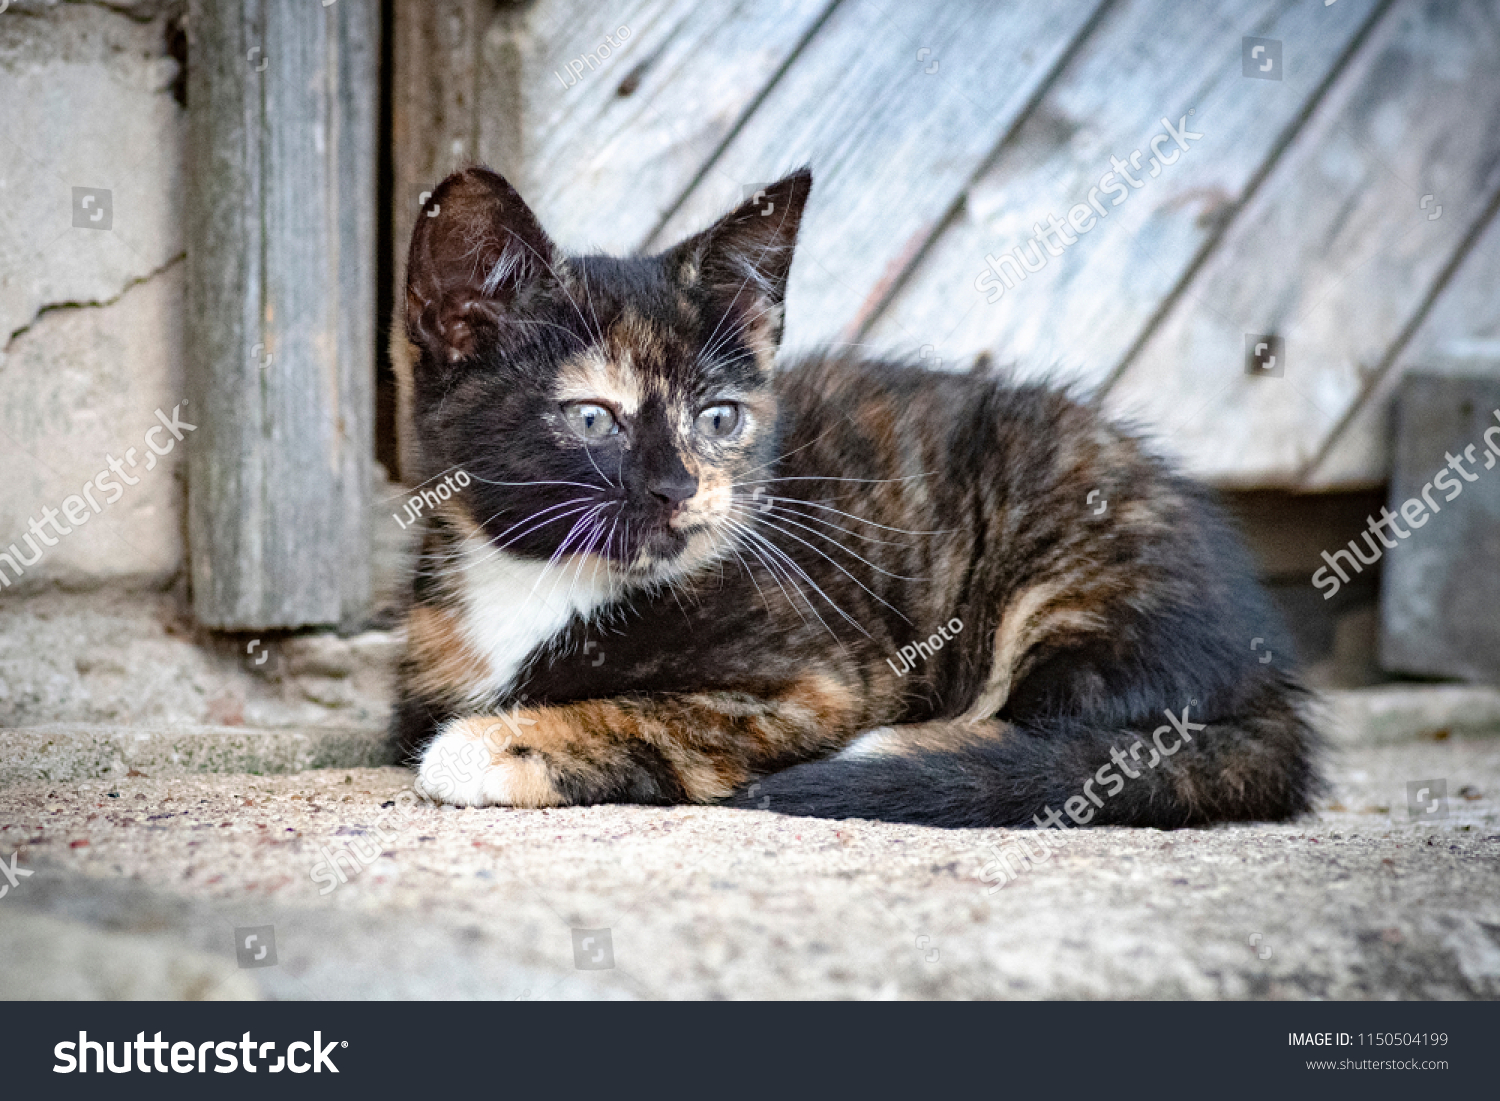 Horizontal Close Image Cute Calico Cat Stock Photo Edit Now 1150504199